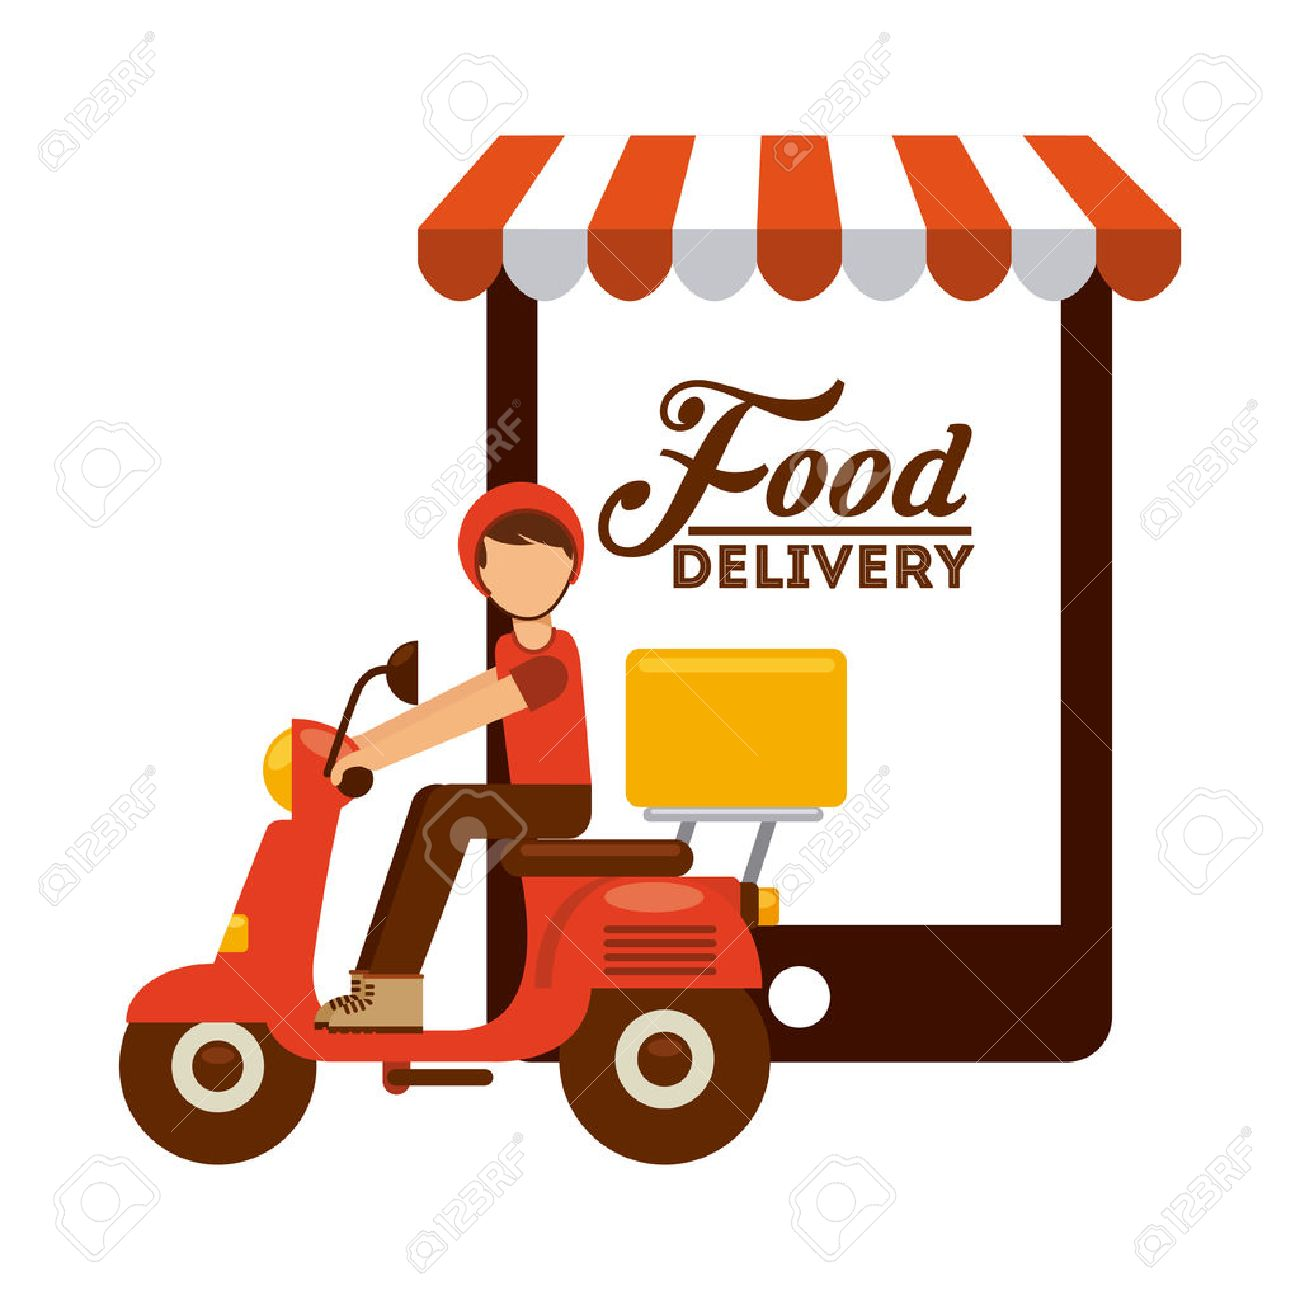 Food Delivery Design Royalty Free Cliparts Vectors And Stock